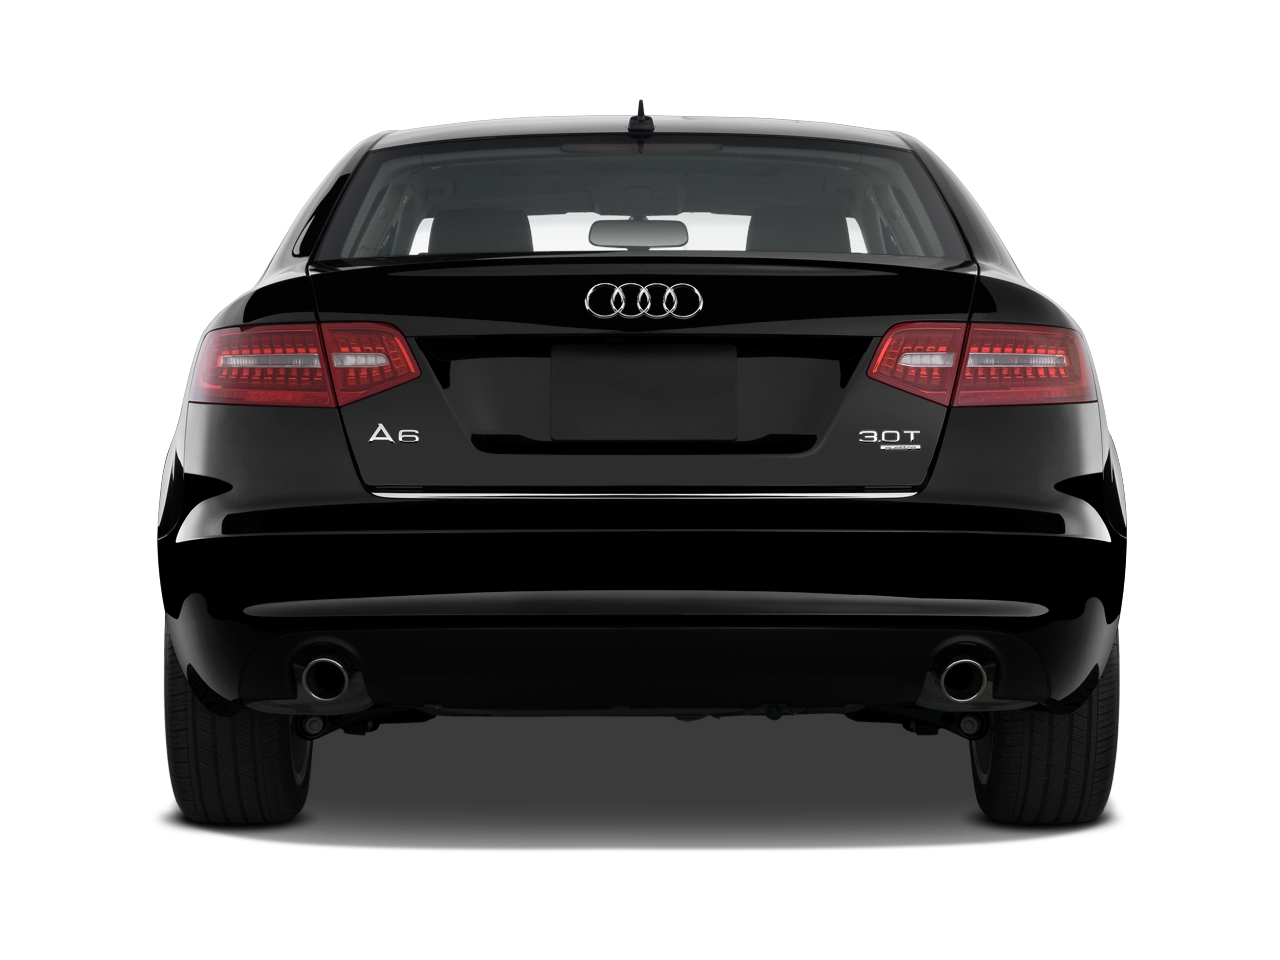 2009 Audi A6 3 0t Audi Luxury Sedan Review Automobile